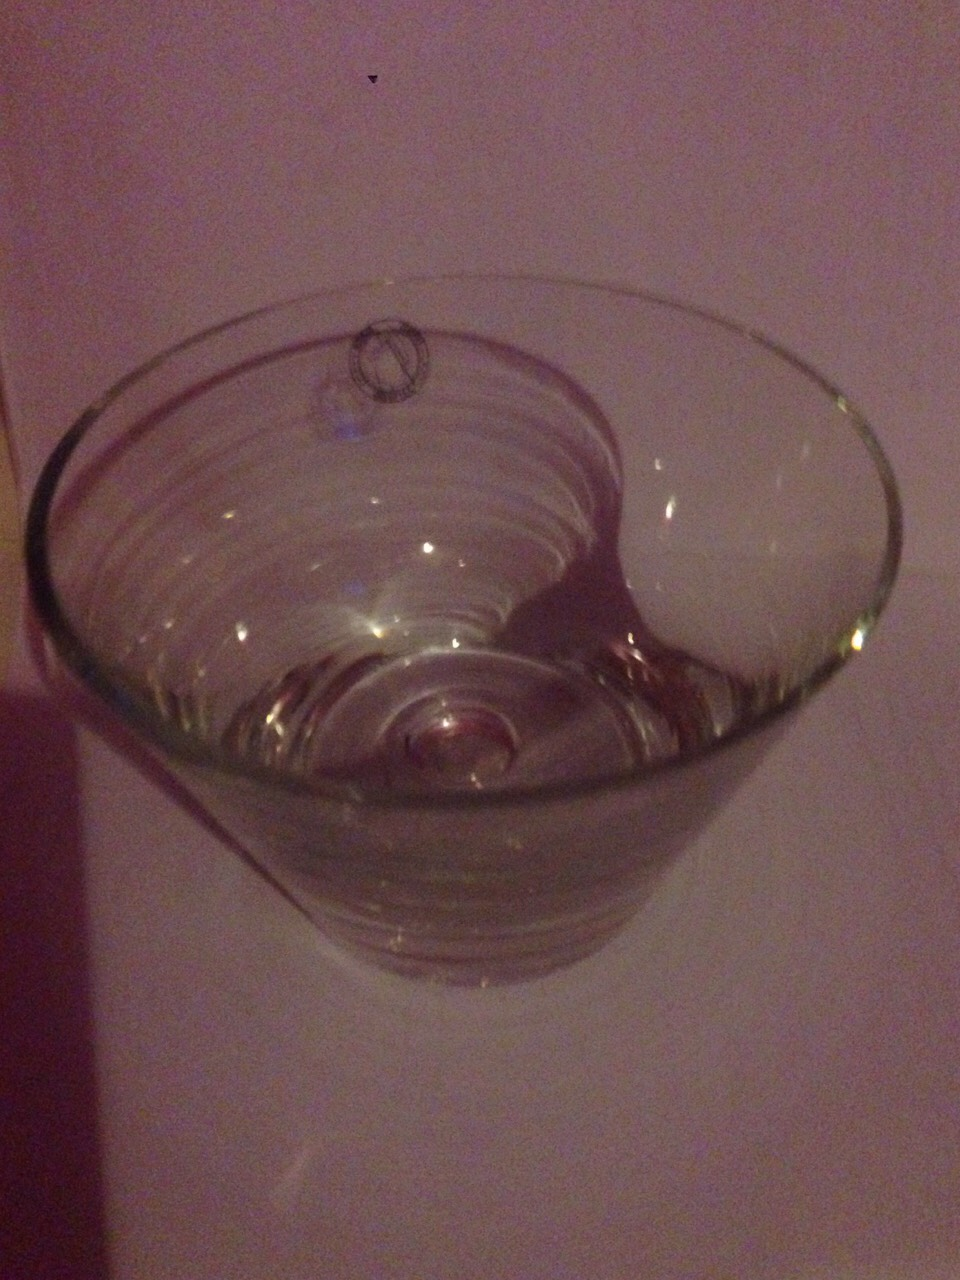 Place your glass bowl where ever you want